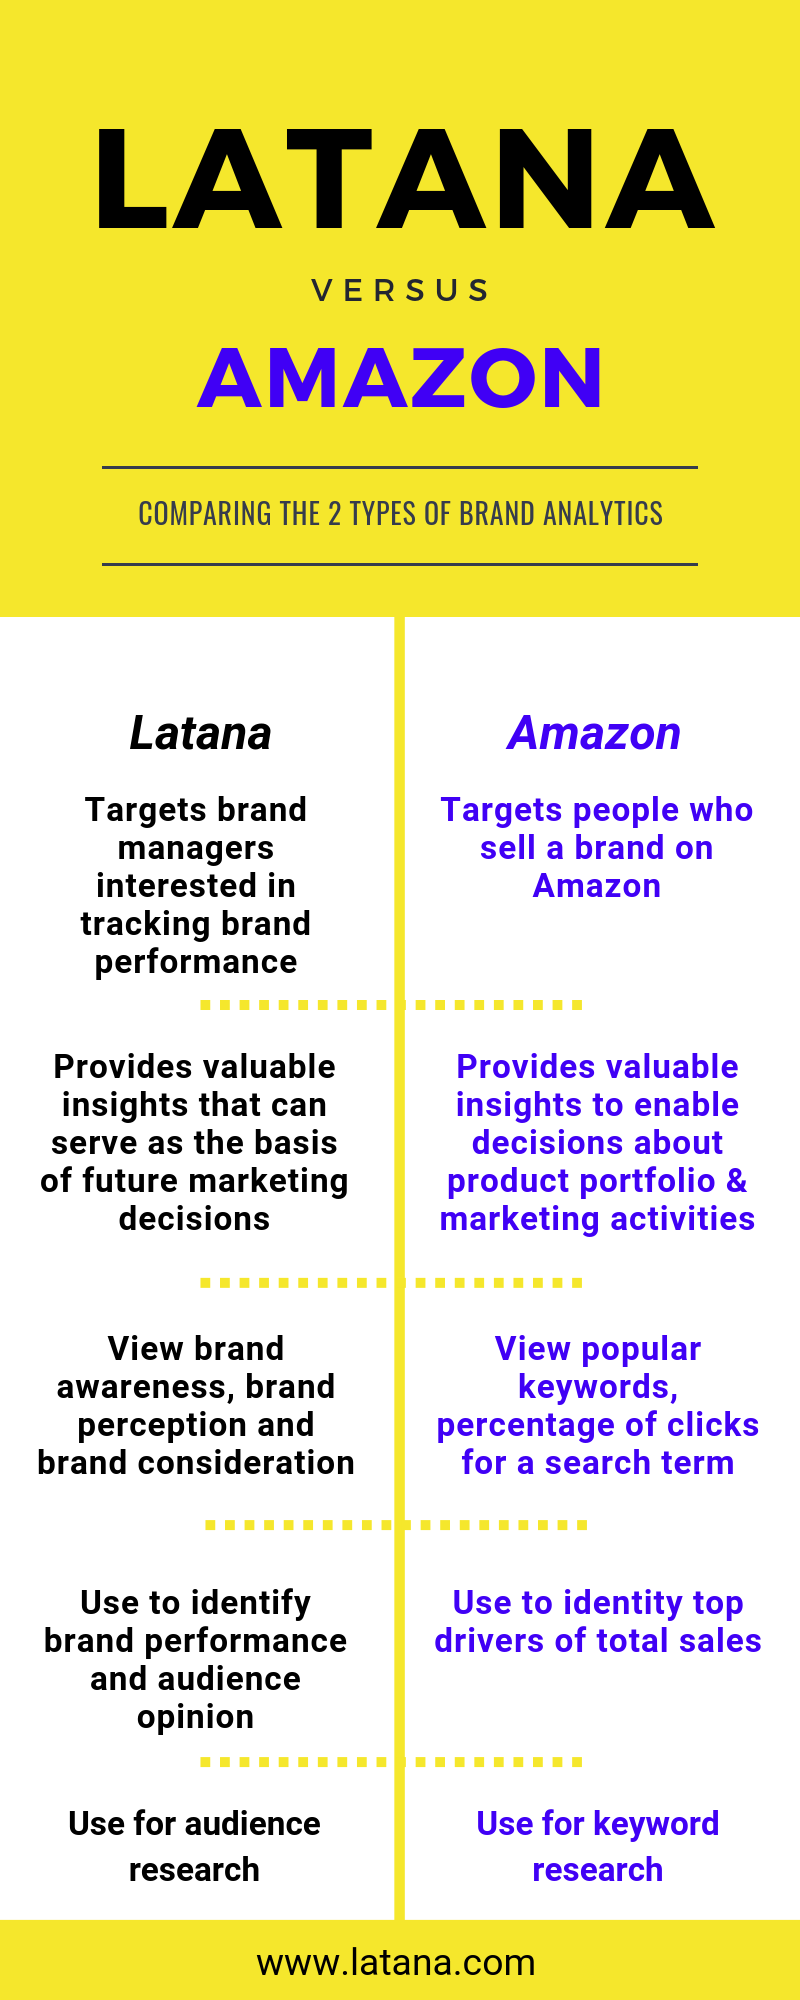 Latana Amazon Brand Analytics Comparison